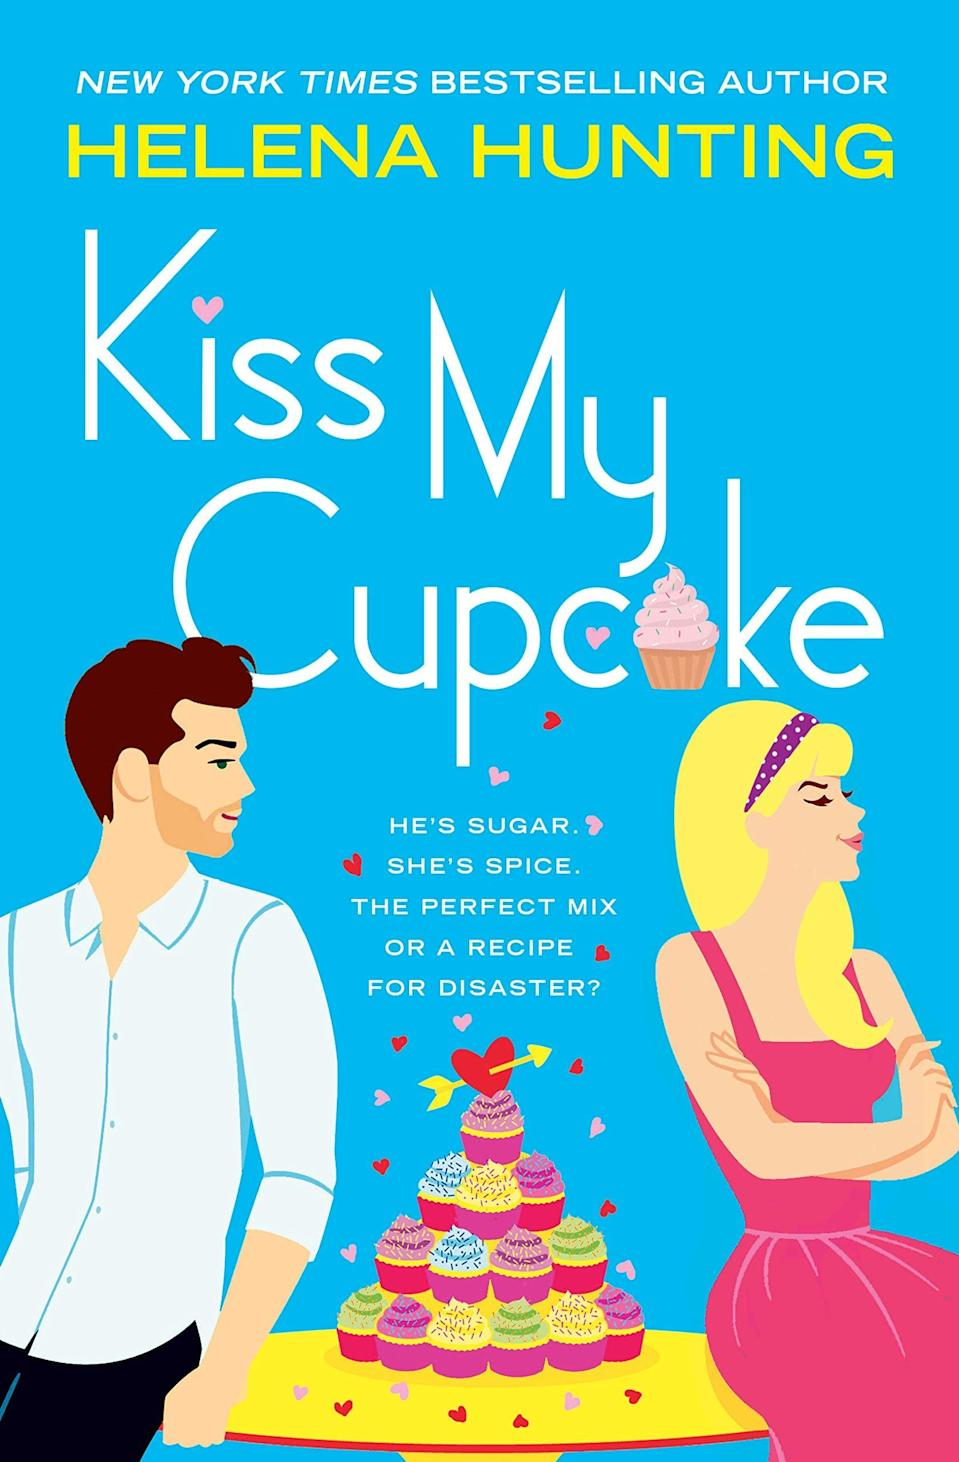 <p>Dessert lovers will enjoy sinking their teeth into <span><strong>Kiss My Cupcake</strong> by Helena Hunting</span> ($12). Blaire Calloway has worked hard to be able to open her own cupcake and cocktails shop, and won't let anything stand in her way of success - especially not Ronan Knight, who runs the popular sports bar next door. The two may constantly butt heads over winning new customers, but there's also a growing attraction they can't ignore.</p> <p>In a genre that thrives on farfetched plots (do people actually fake date in real life?!) and fast-developing romances, the thing I always appreciate from Helena Hunting's books is how realistic the dialogue and pacing are, and how she can make entirely plausible and even ordinary scenarios highly entertaining. I found this book charming, with the perfect balance of steamy and sweet - the latter of which definitely includes the delicious cupcake flavors Blaire concocts. And okay, I know I just said I love the author's realistic take on writing romance, but there is one scene in which Ronan meets Blaire's unconventional family that's SO funny in its absurdity.</p>